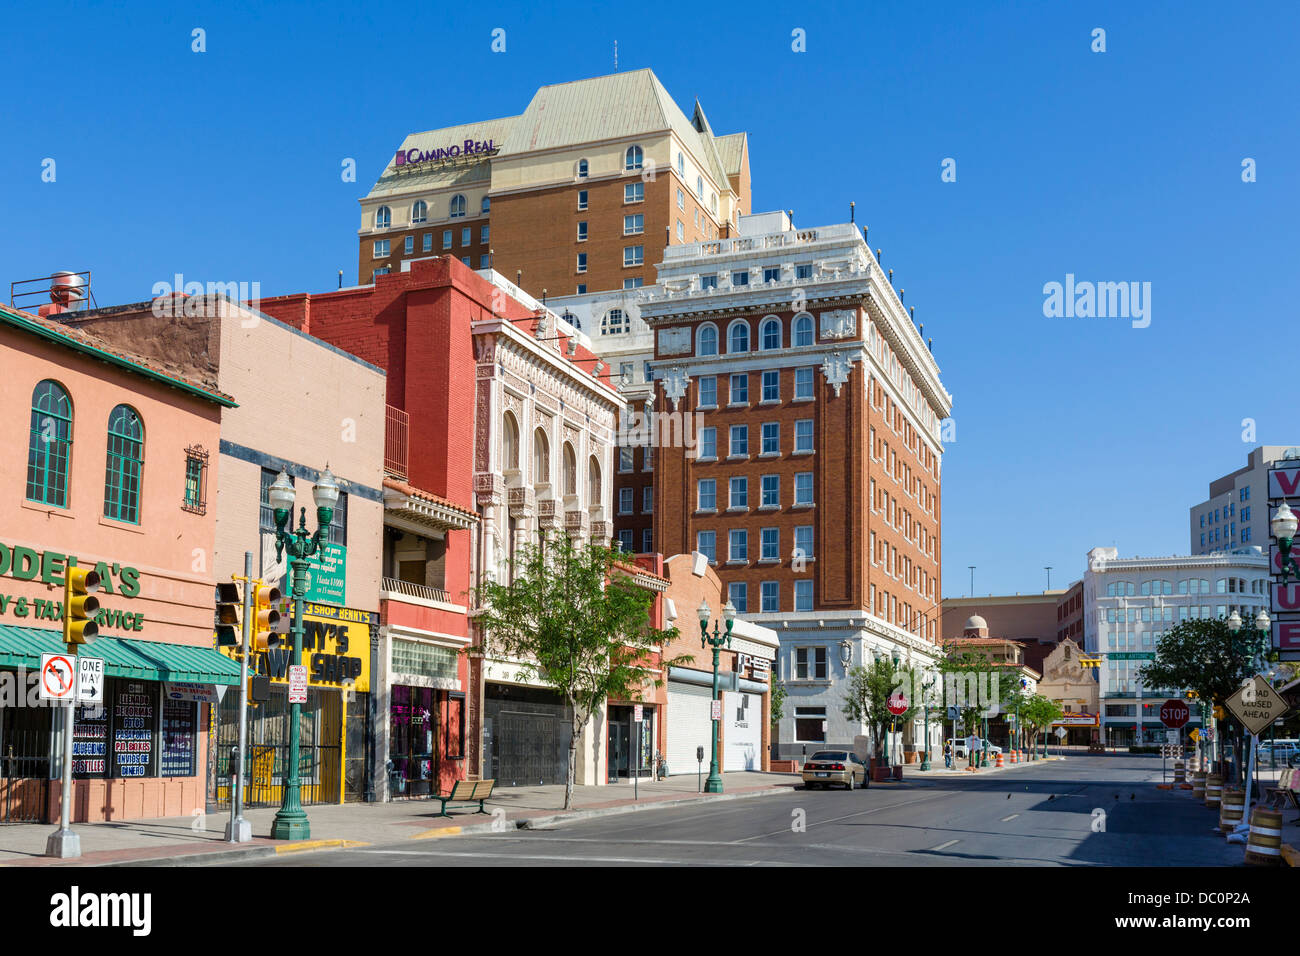 South El Paso Street looking towards the Camino Real Hotel, downtown El Paso, Texas, USA - Stock Image